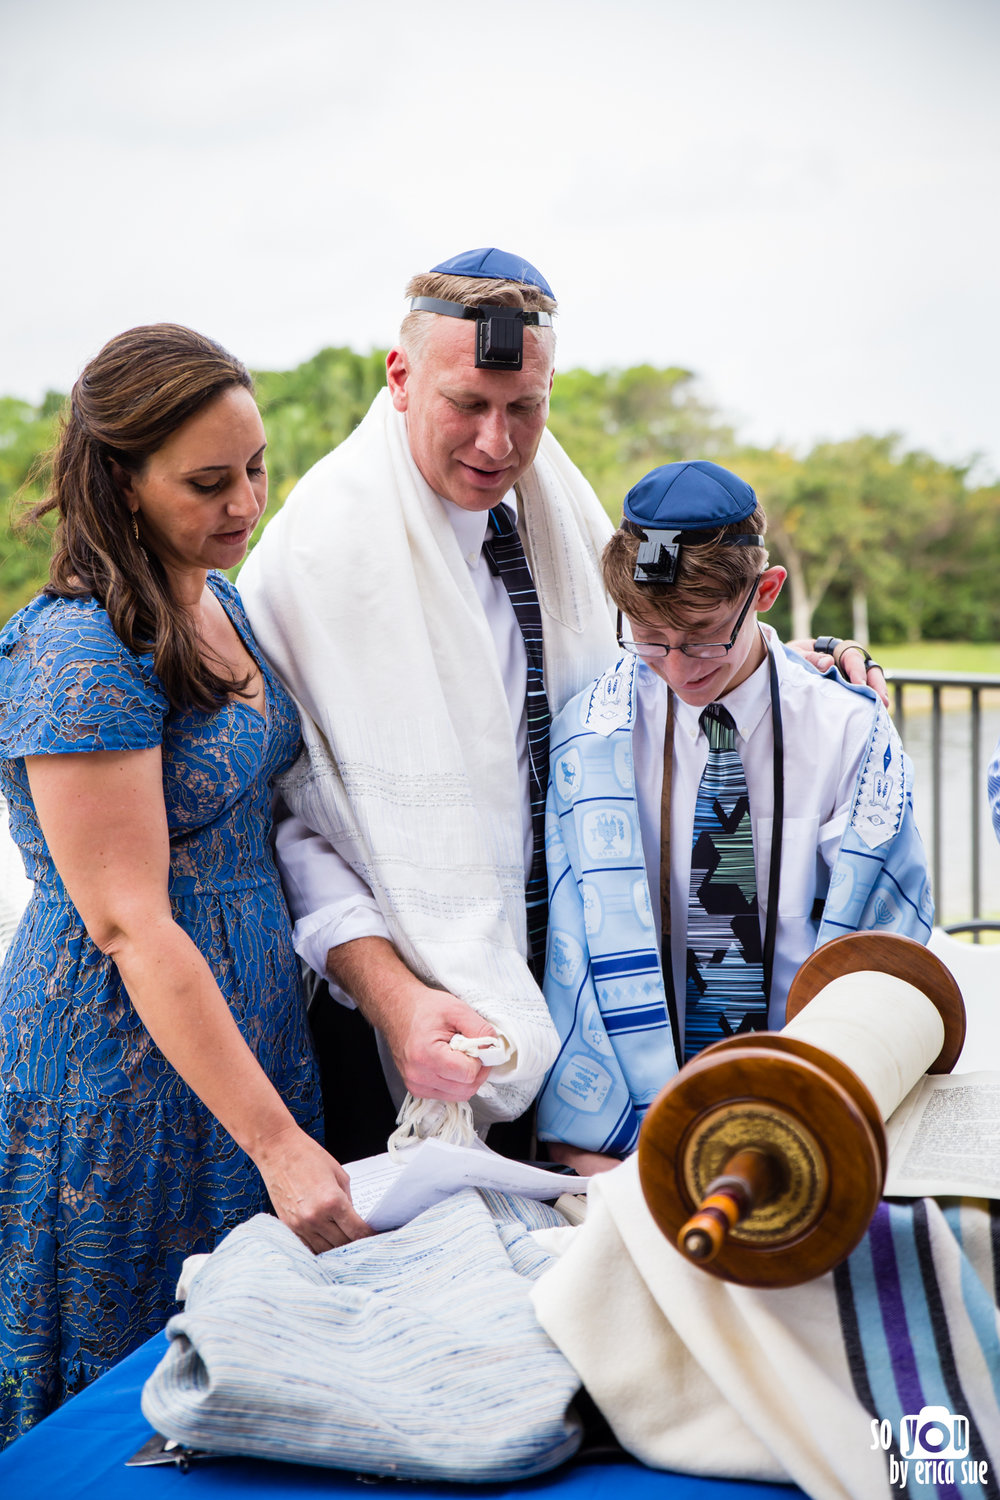 bar-mitzvah-photography-ft-lauderdale-so-you-by-erica-sue-0440.jpg